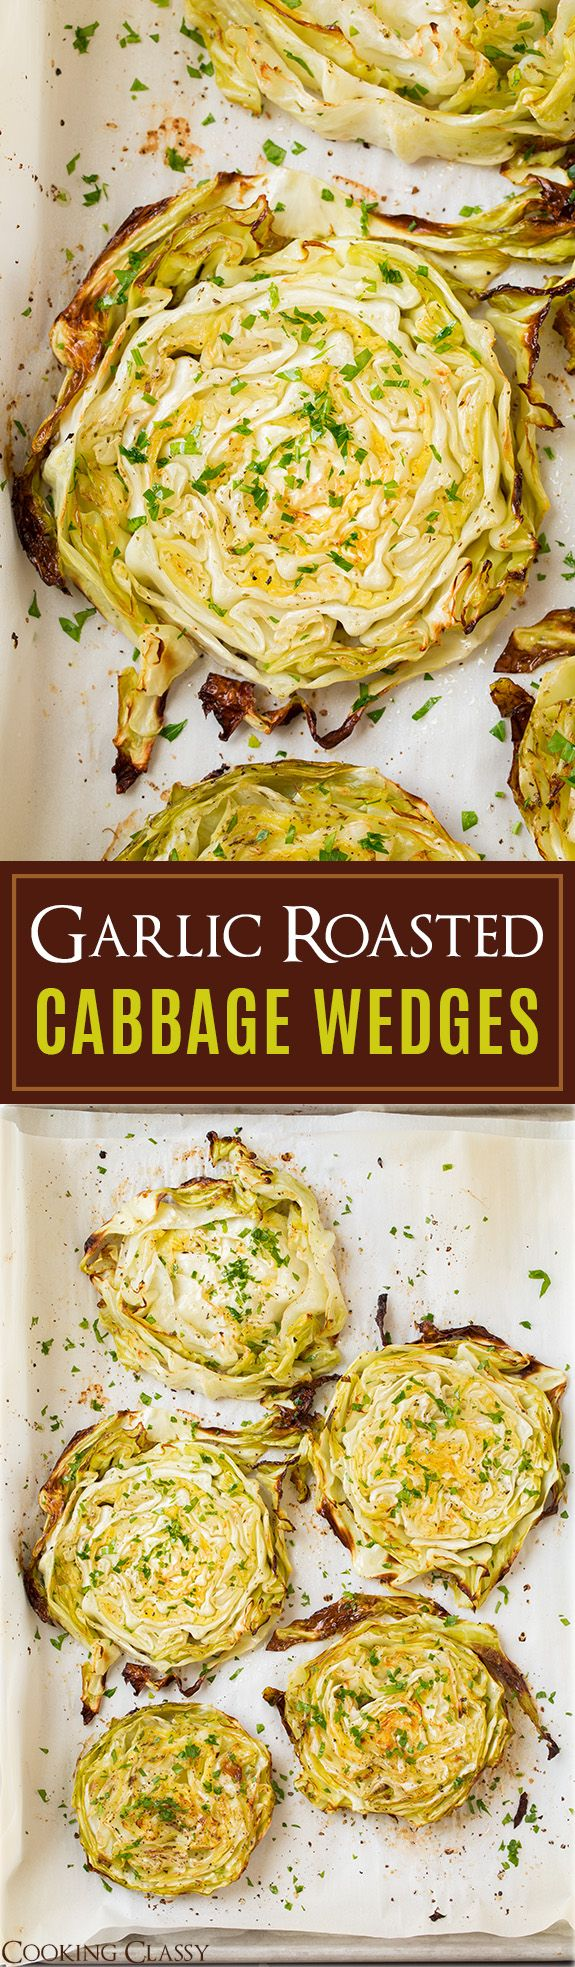 Garlic Roasted Cabbage Wedges - previous pinner says: So easy so delicious! My favorite way to cook cabbage!